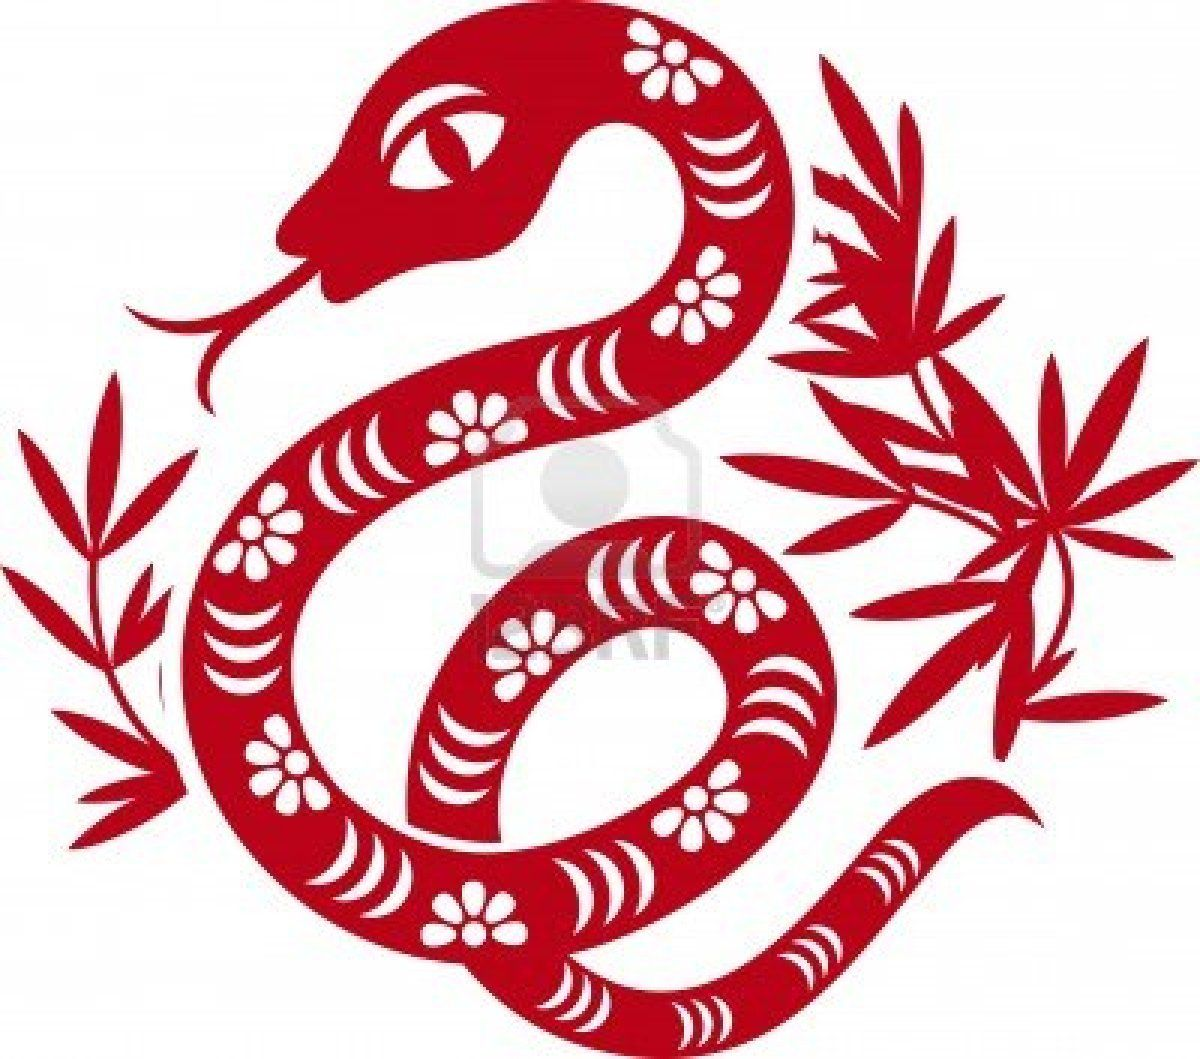 Tattoo idea maybe im crazy pinterest chinese paper cutting chinese paper cut out snake as symbol of year 2013 royalty free cliparts vectors and stock illustration biocorpaavc Choice Image